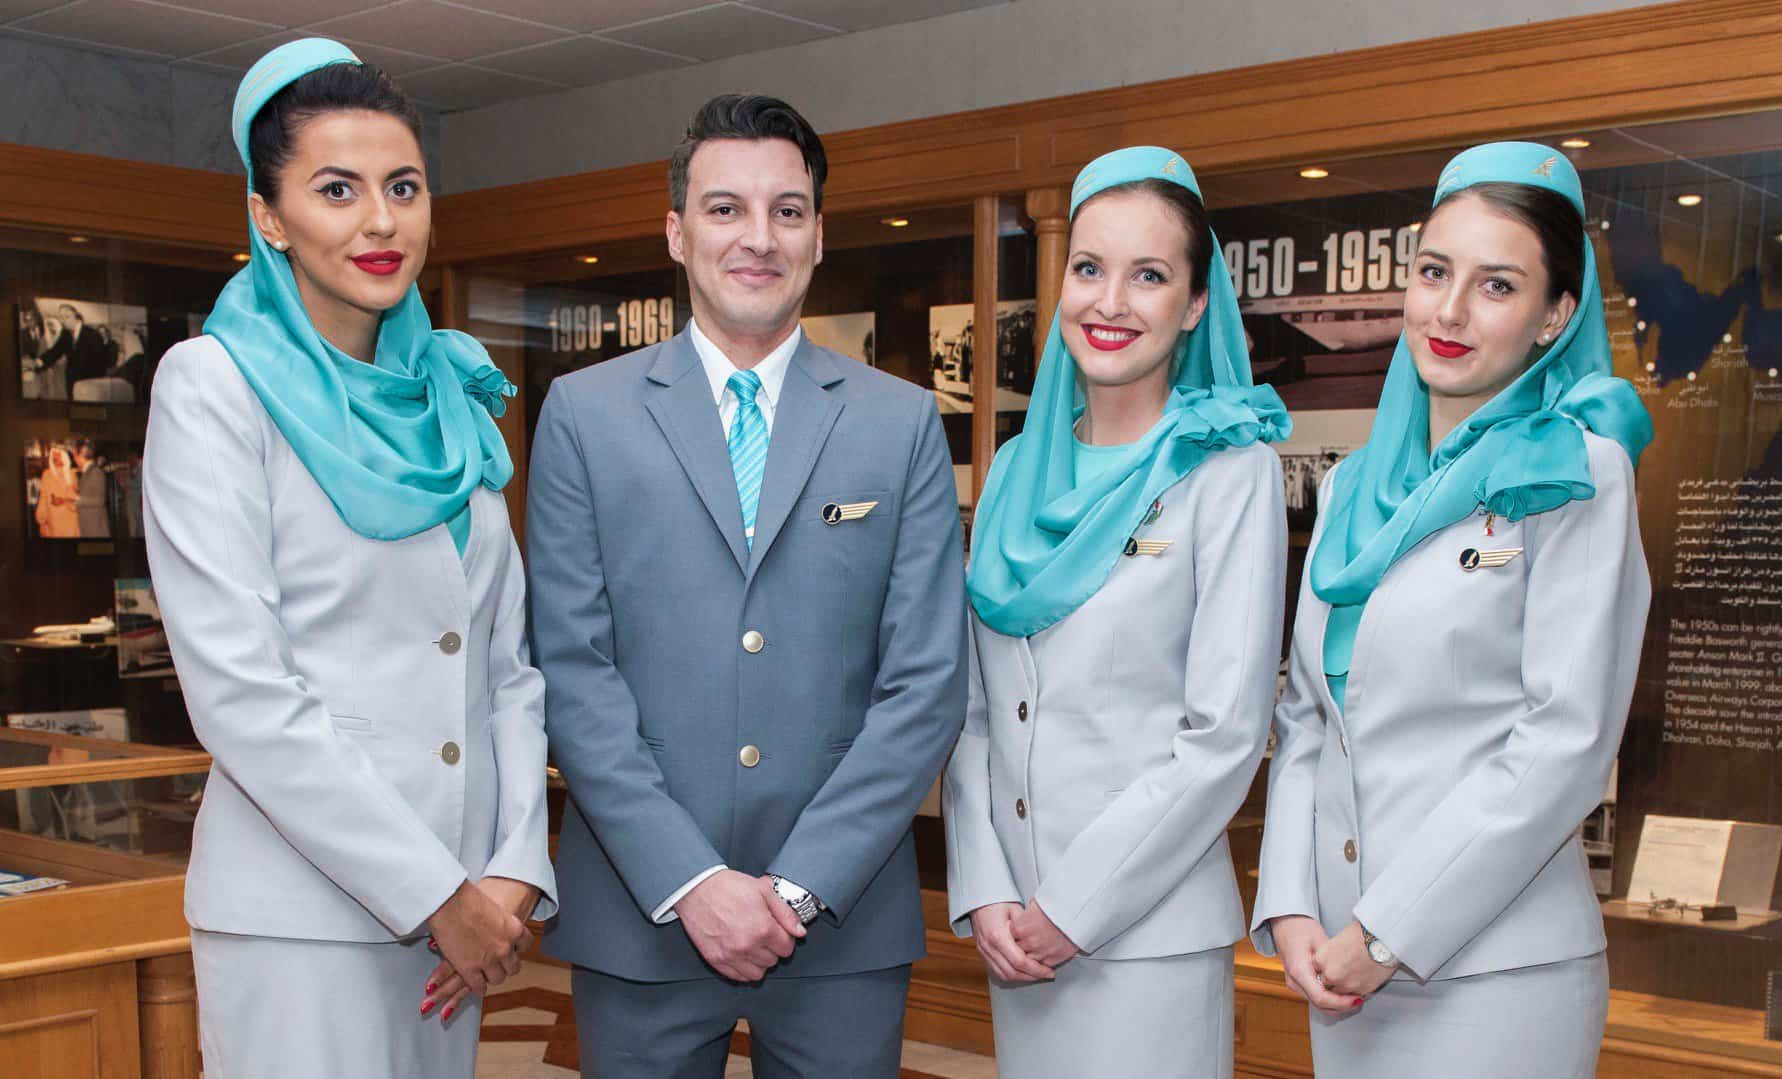 Gulf Air Flight Attendant Recruitment - London [2020] - Apply Now